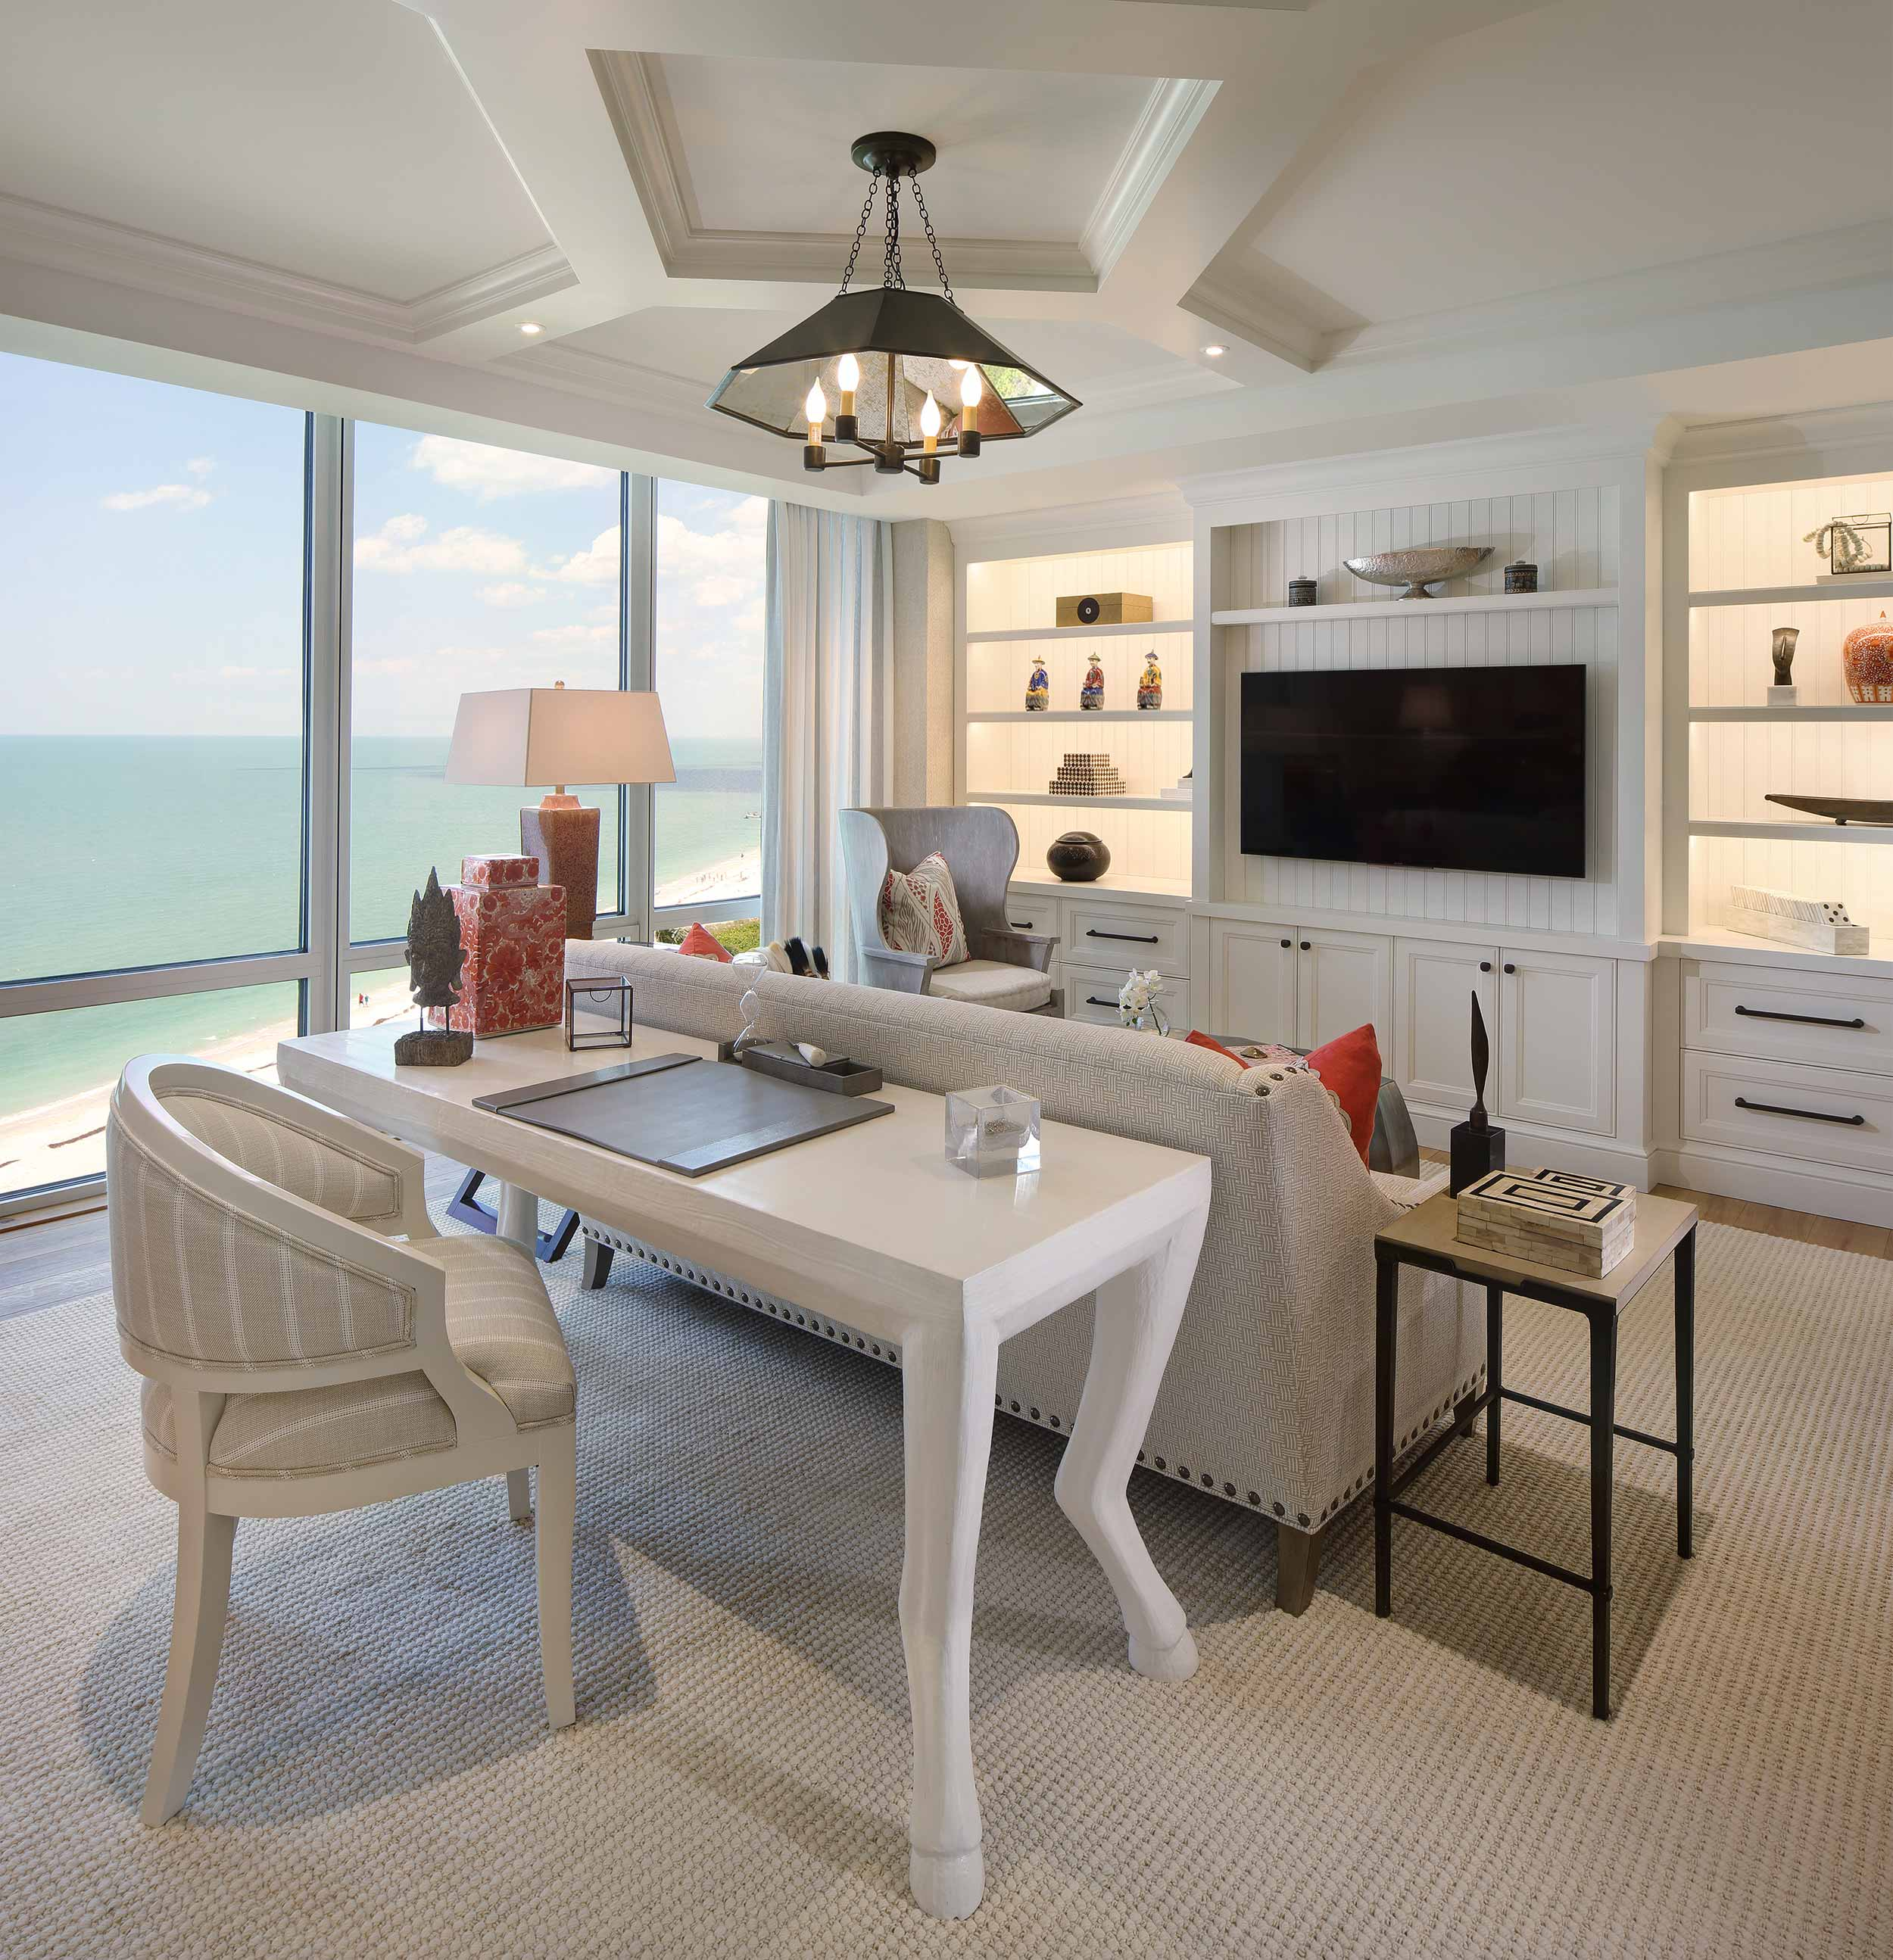 Florida residential photography with ocean view